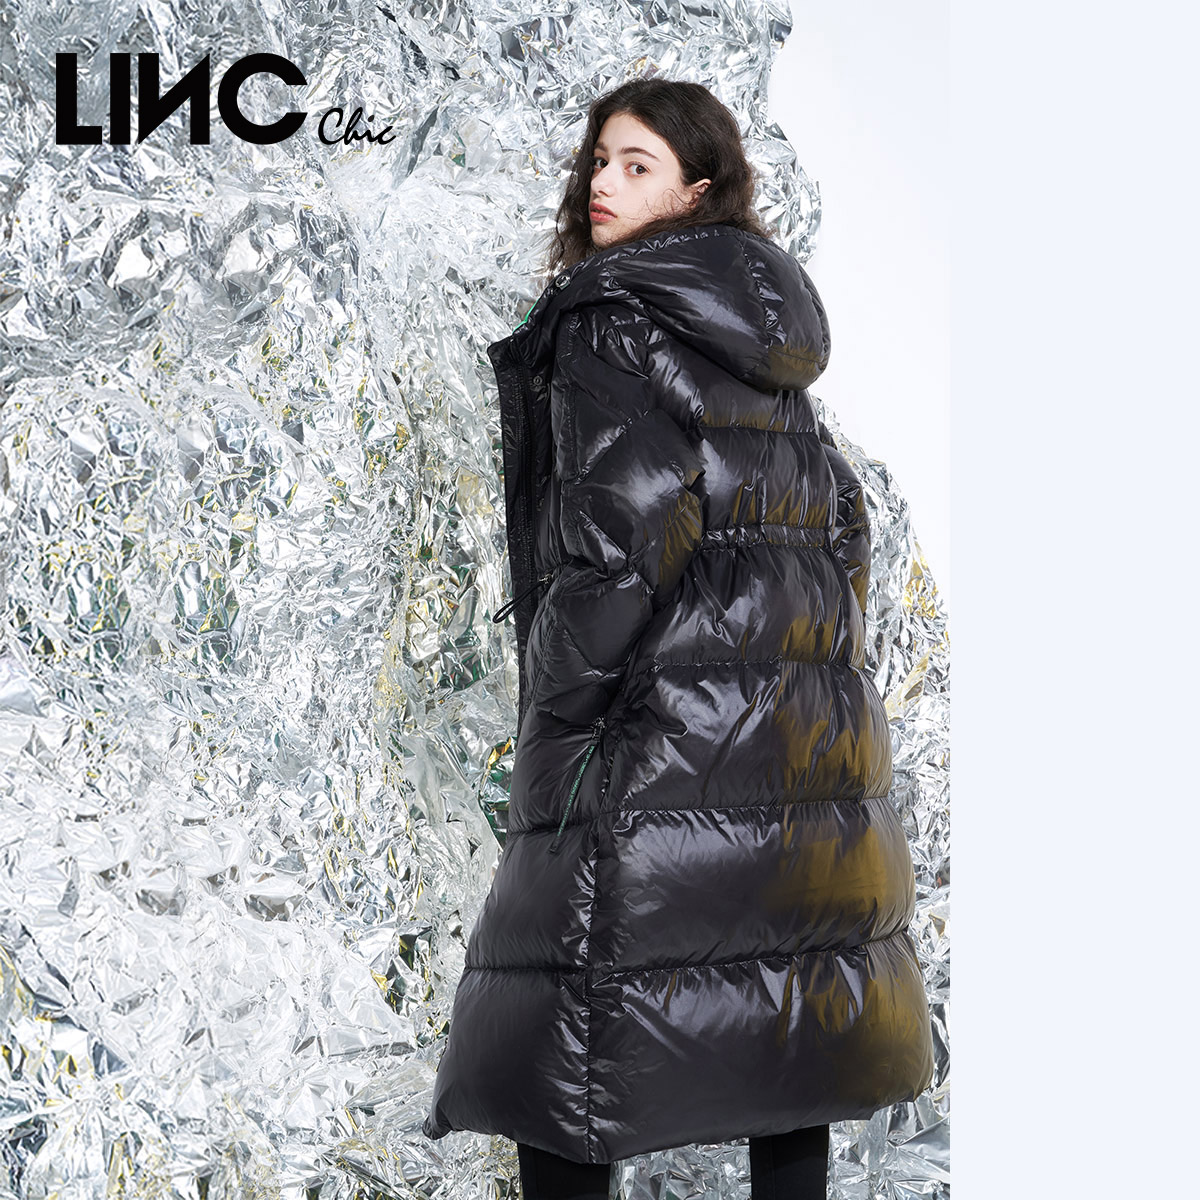 Linc Jin Yujie 2020 Winter New Tilt cool long bread thickening jacket down jacket female 2083489